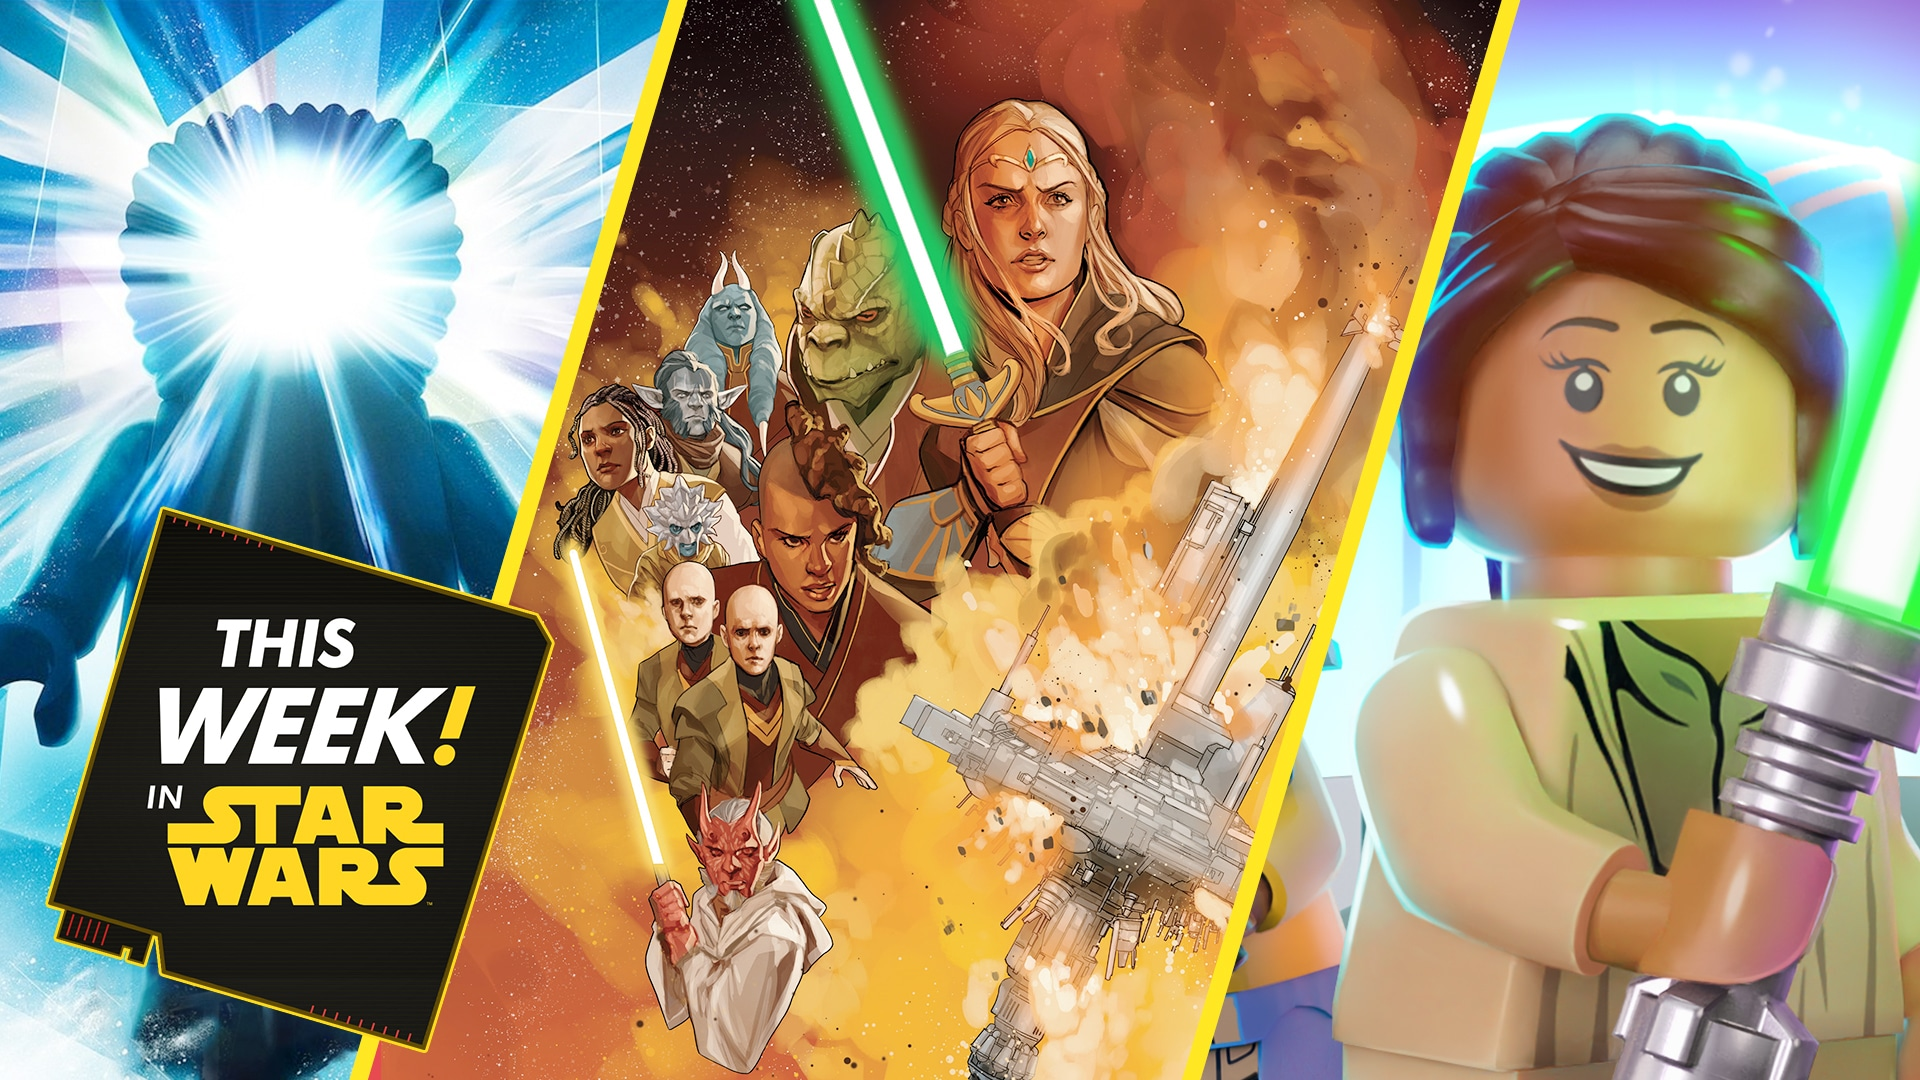 Disaster Strikes The High Republic, Castaway with LEGO, and More!